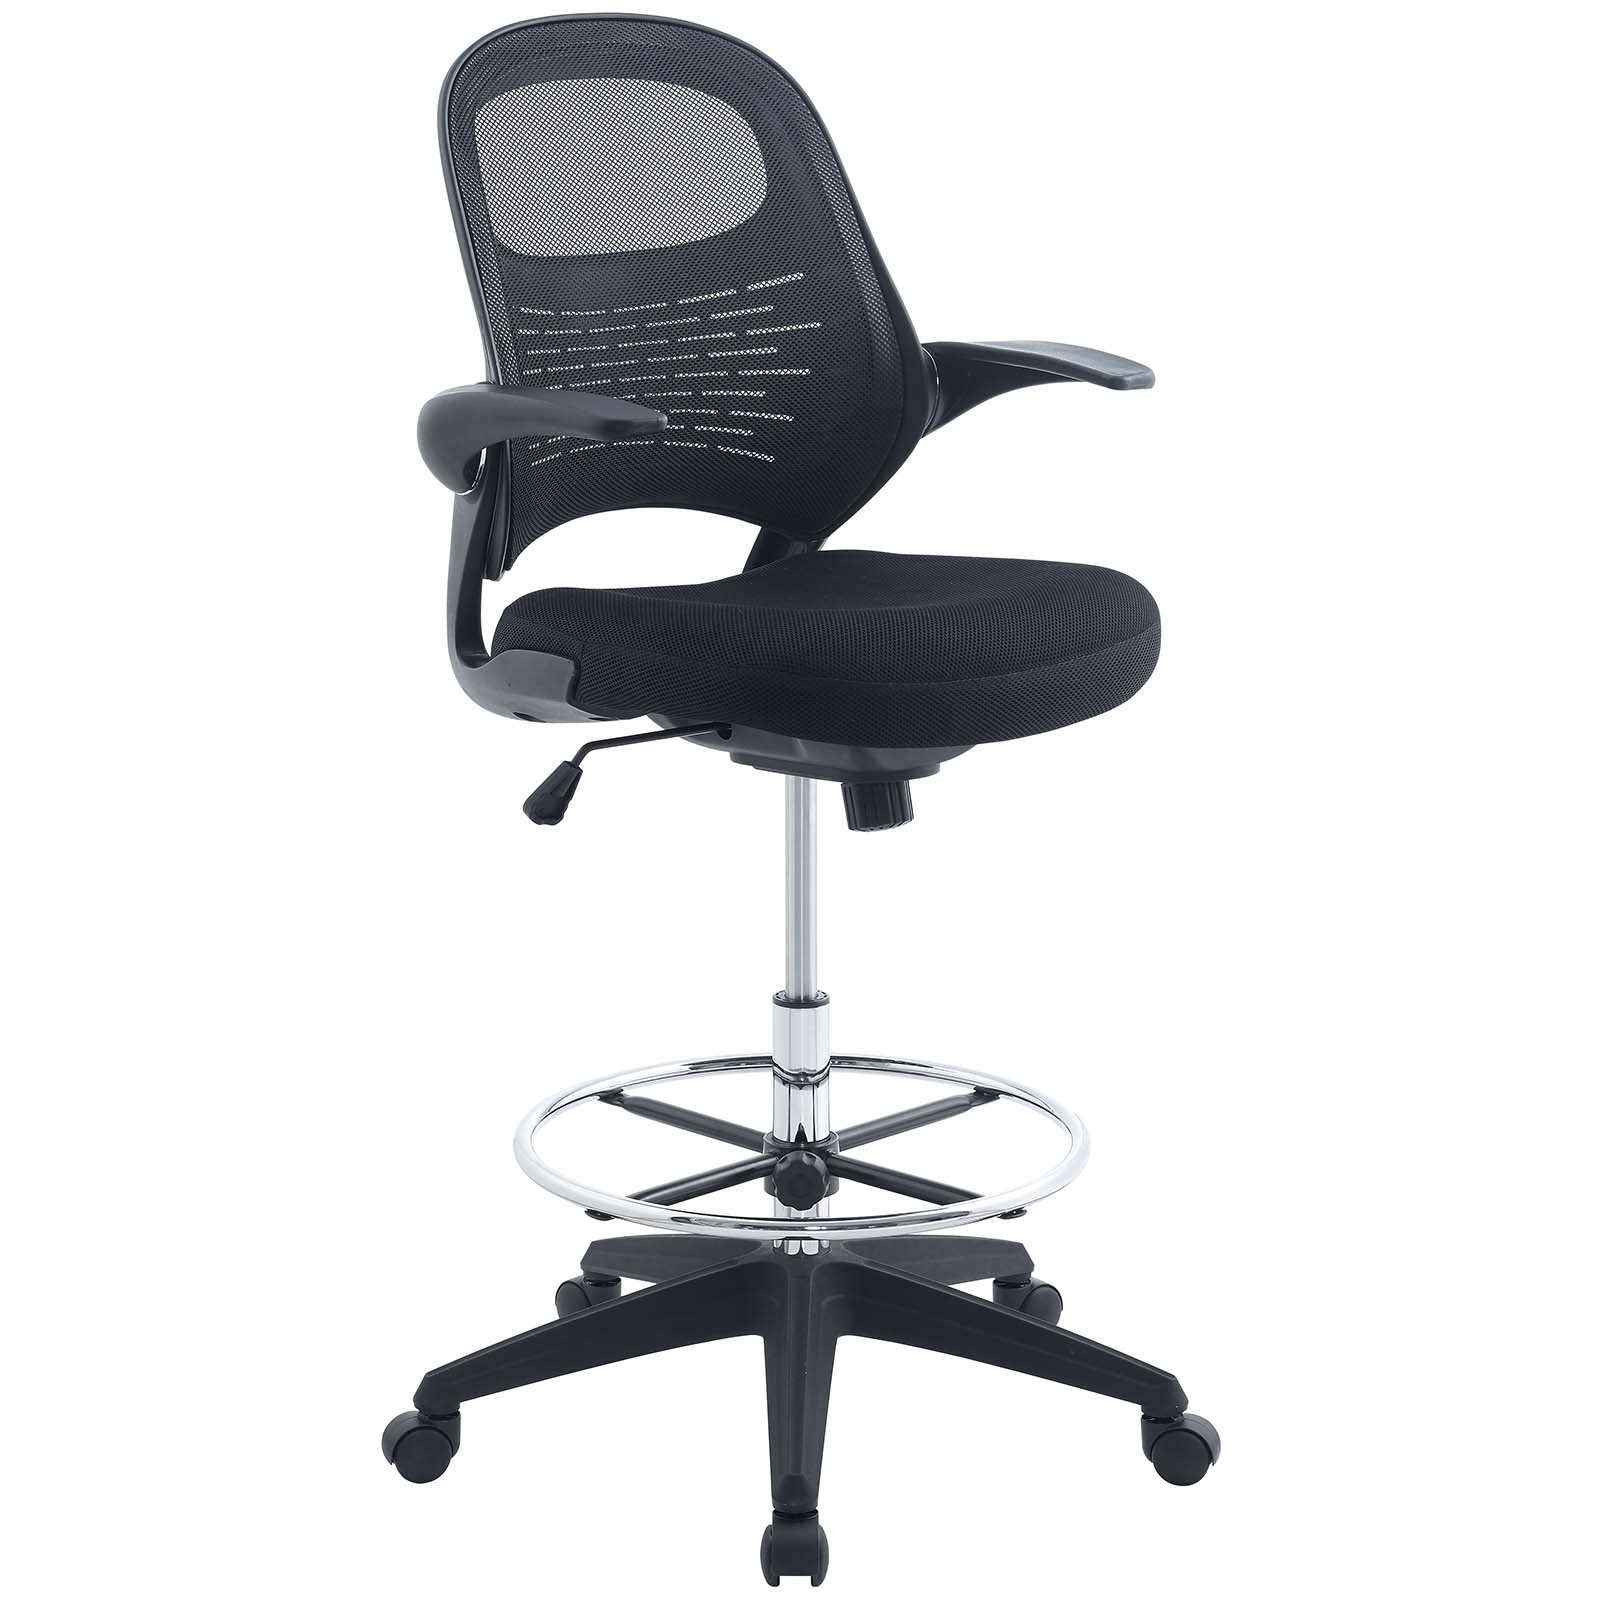 Modway Stealth Drafting Chair In Black - Reception Desk Chair - Tall Office Chair For Adjustable